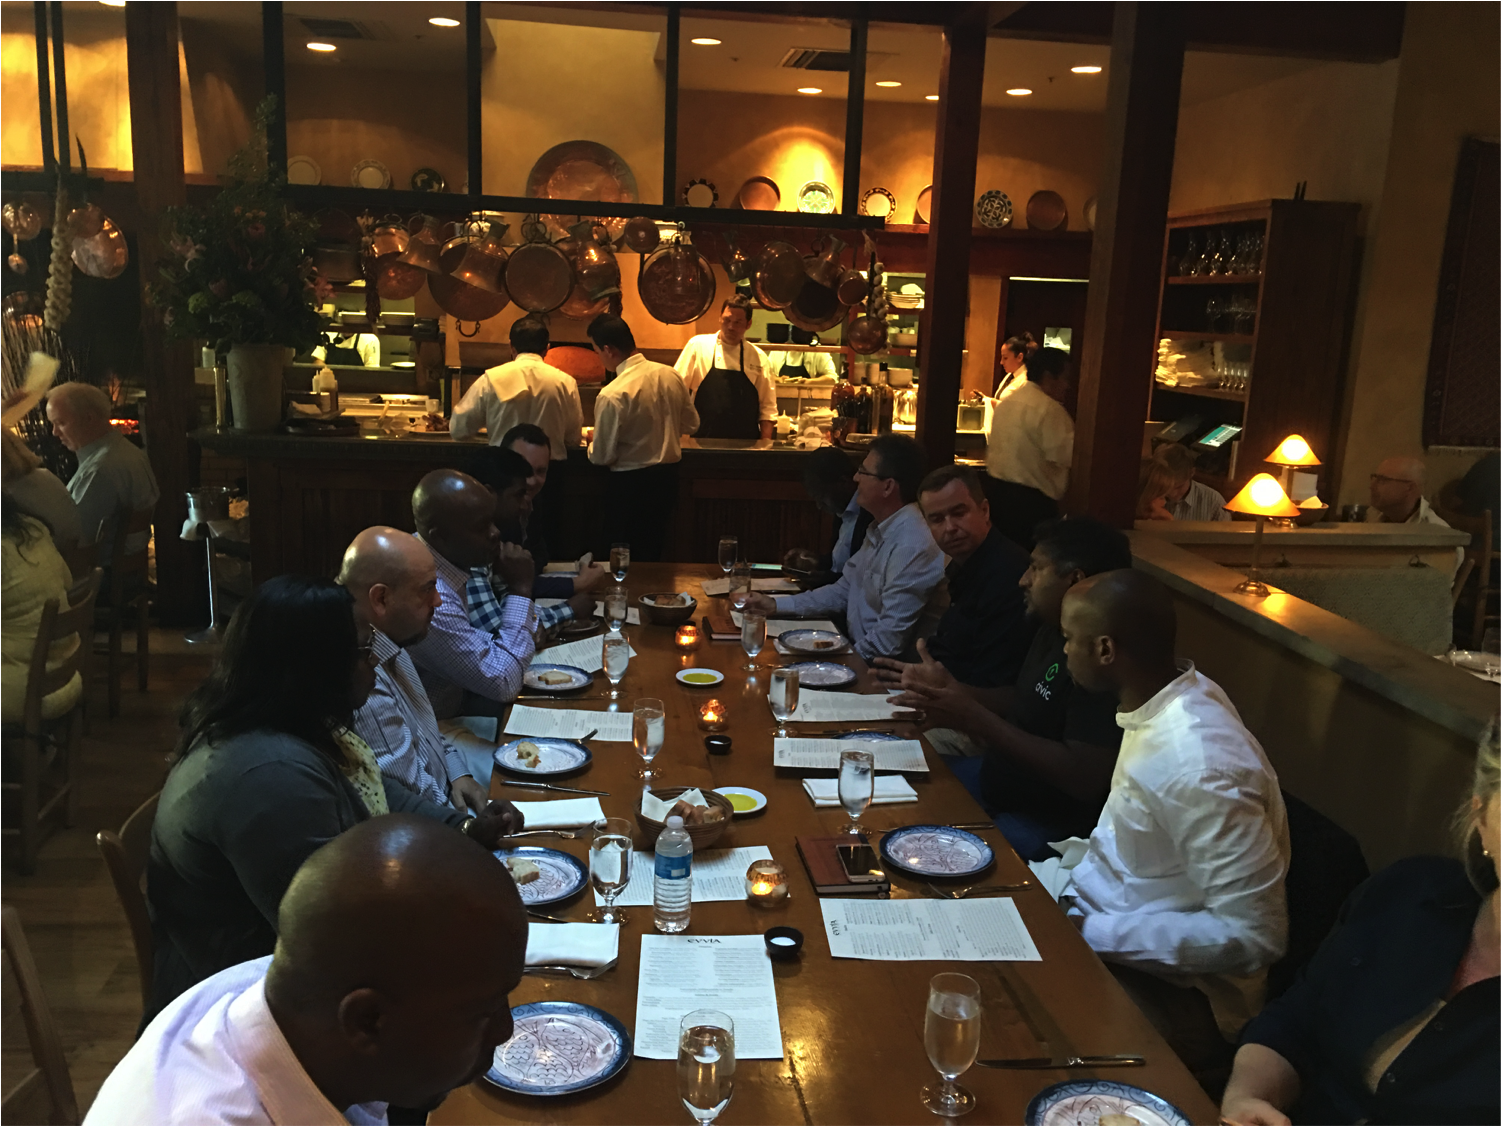 Dinner with Vinny Lingham, co-founder and CEO of Civic.com.